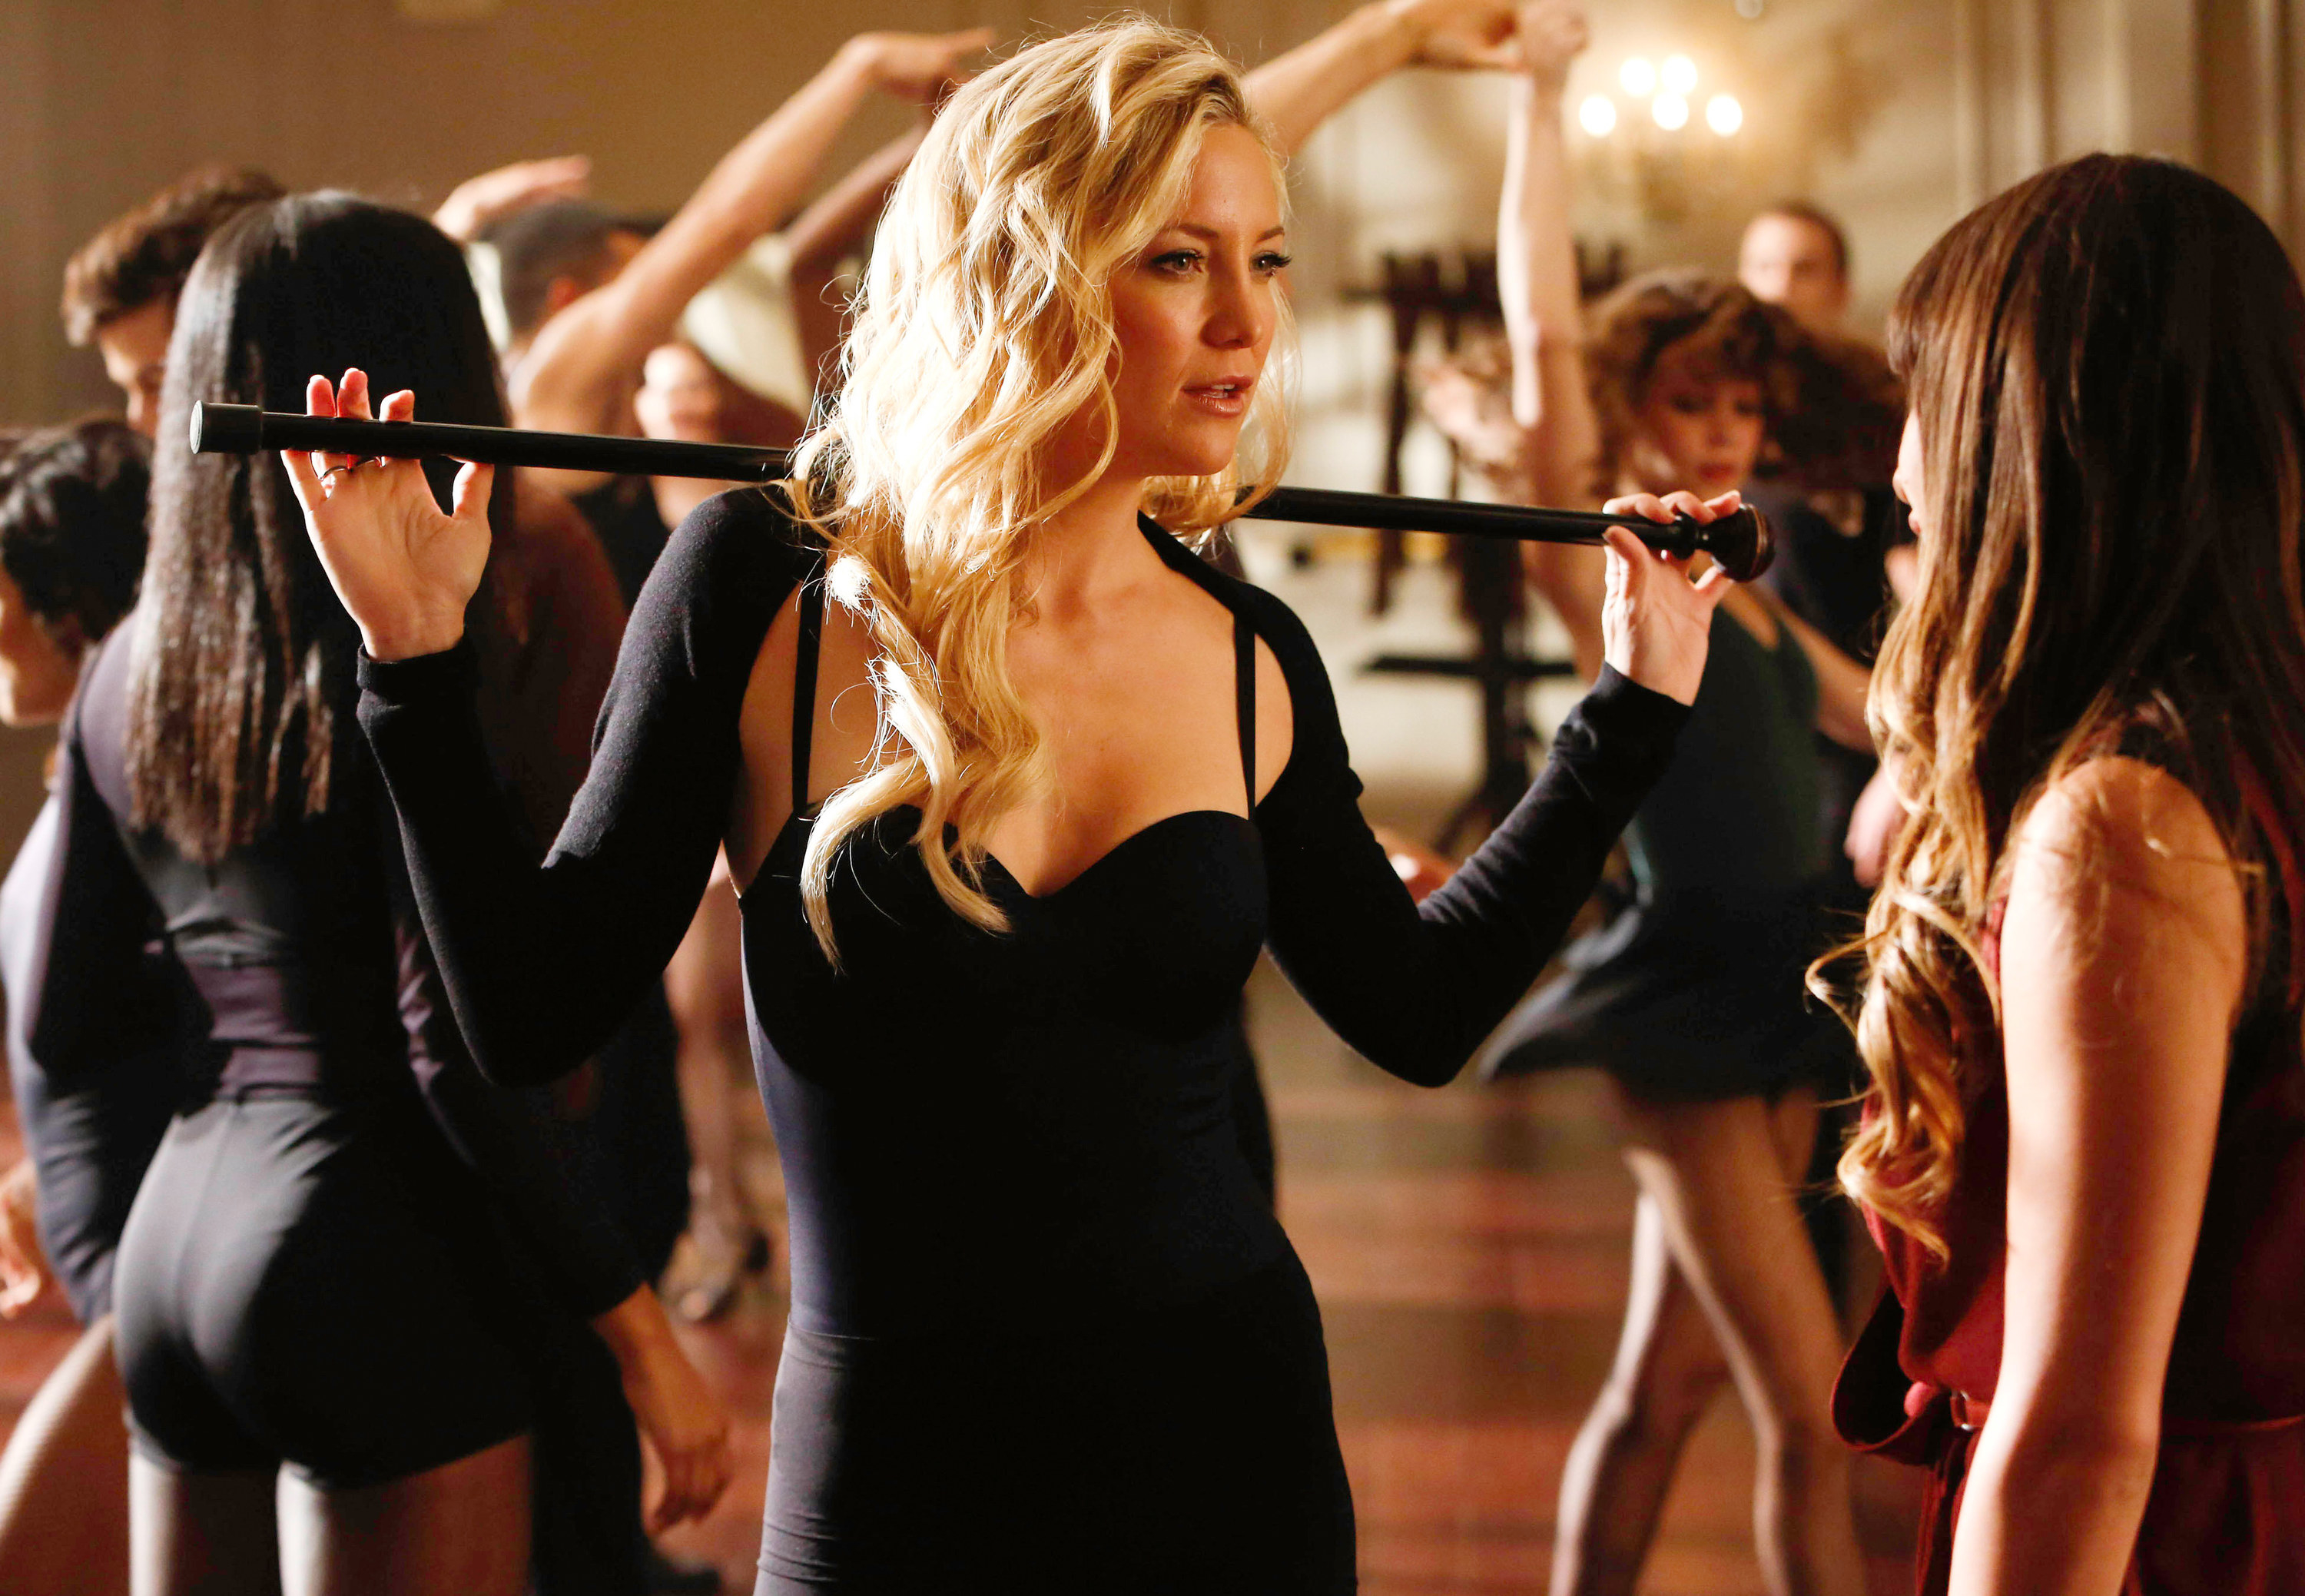 Kate in a dance class with Rachel and other students